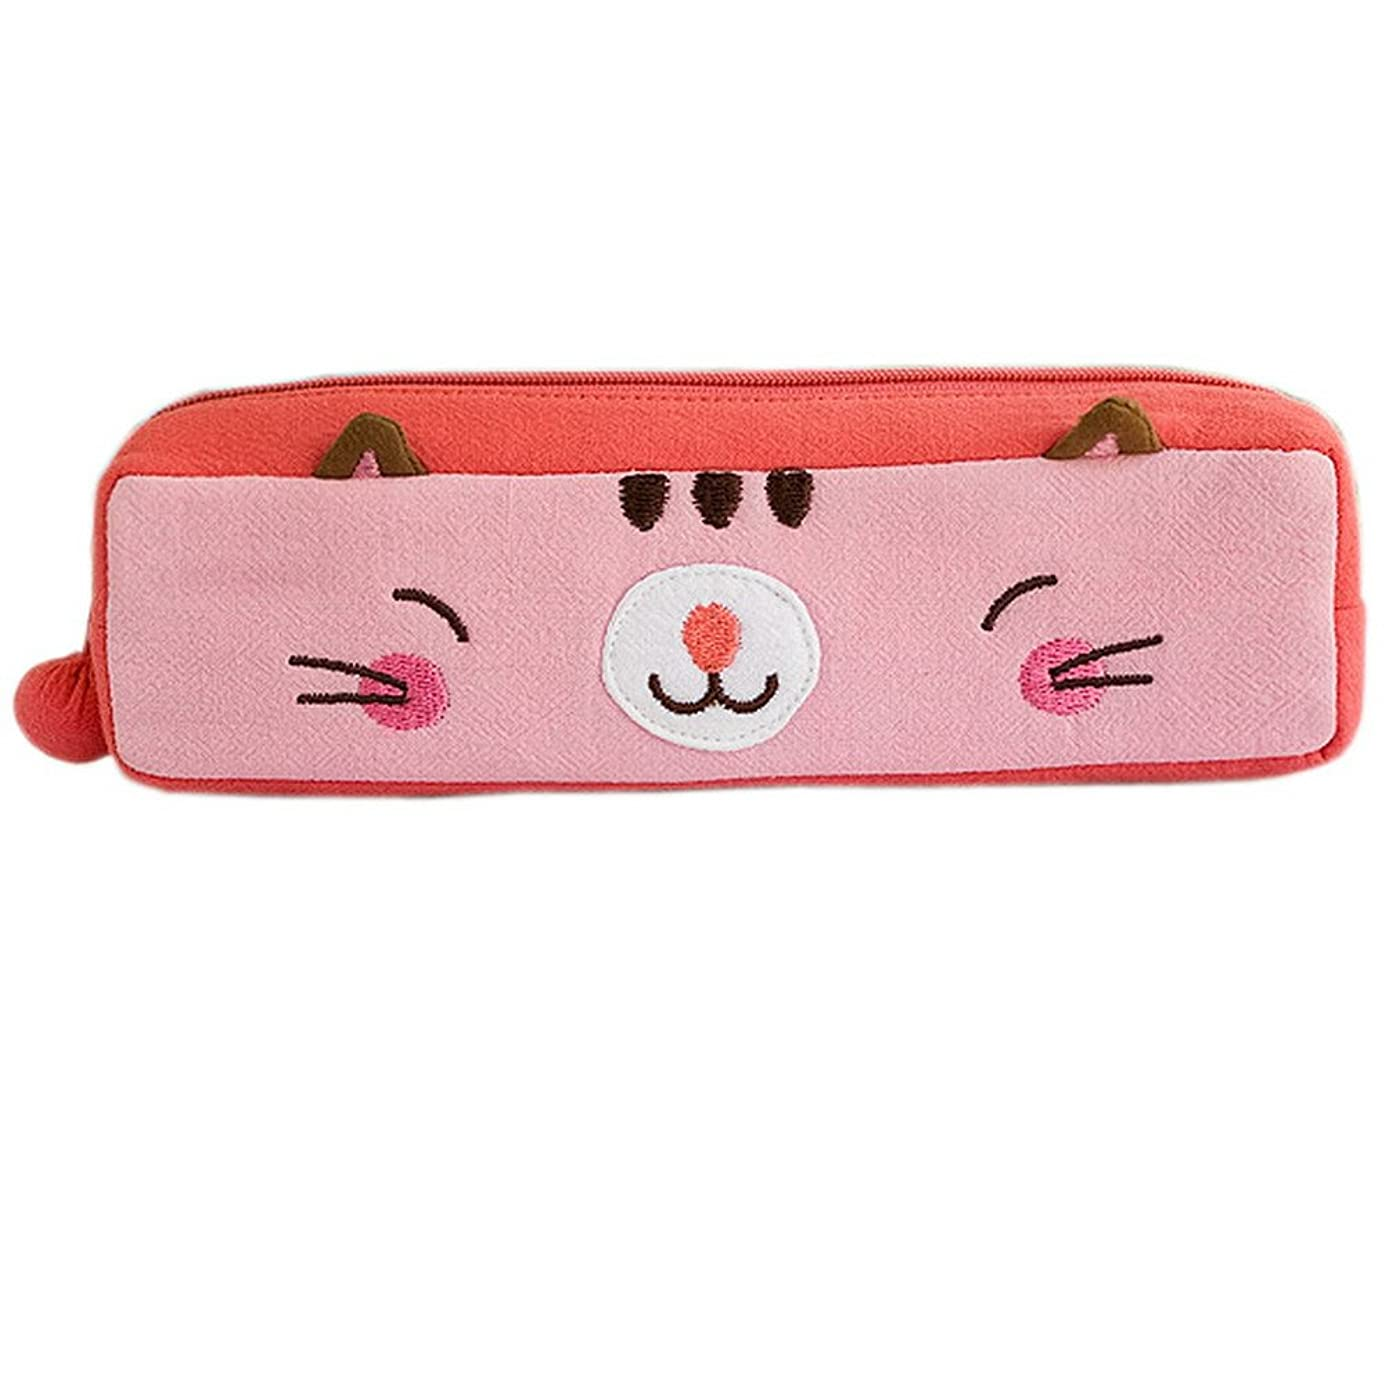 [Pinky Kitten] Embroidered Applique Pencil Pouch Bag / Cosmetic Bag / Carrying Case (7.31.81.9) ujo9891494